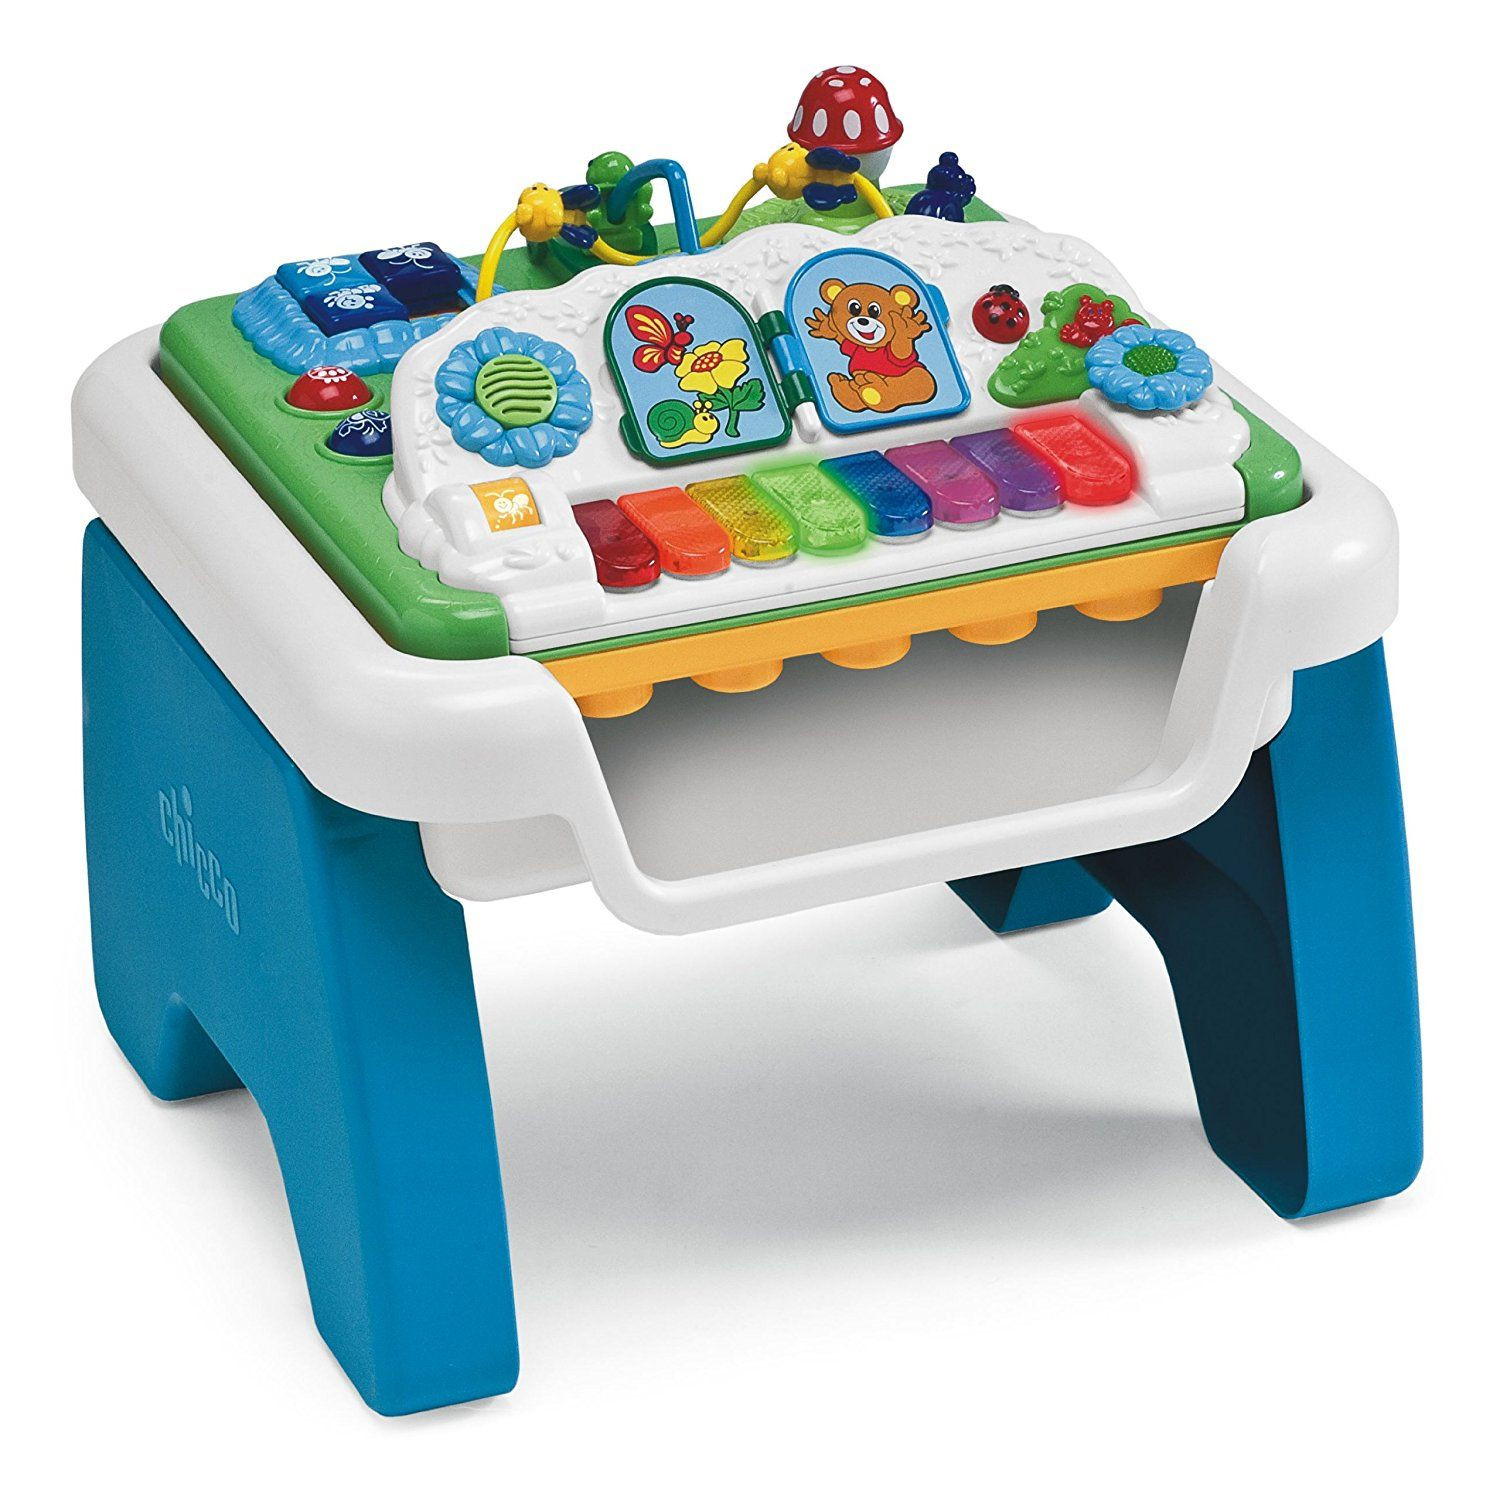 Table d 39 activit s musicale chicco avis - Table d activite exterieur ...